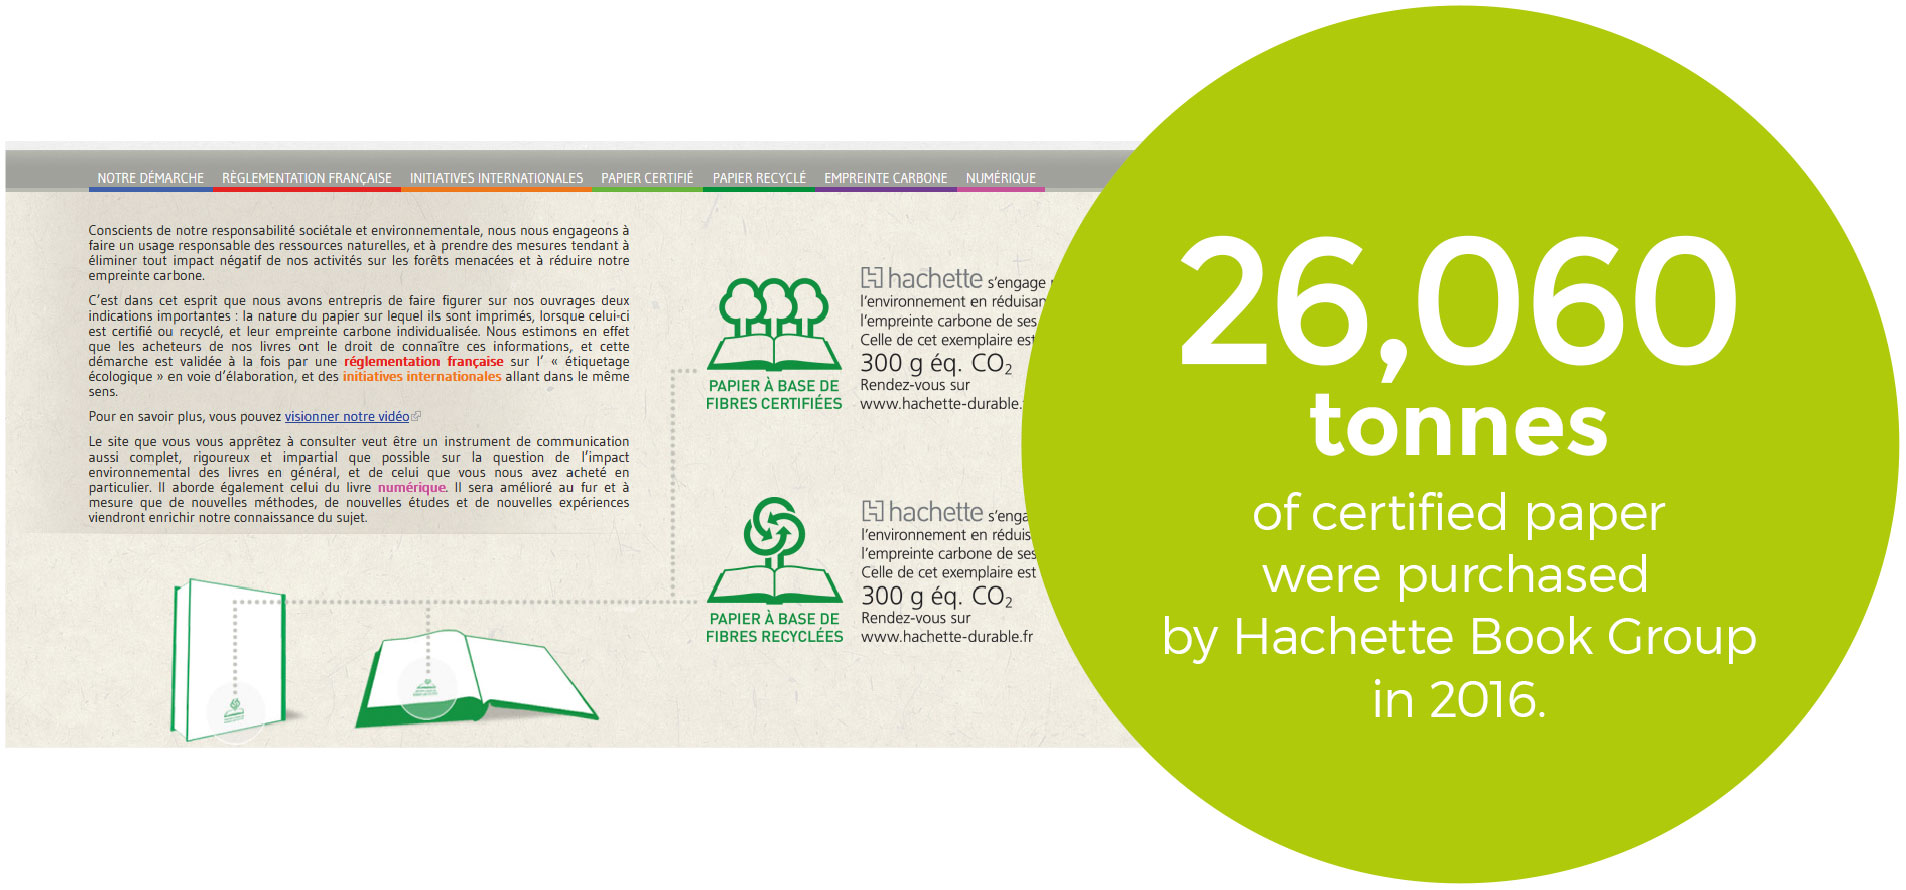 Hachette-durable.fr website dedicated tothe environmental challenges of paper